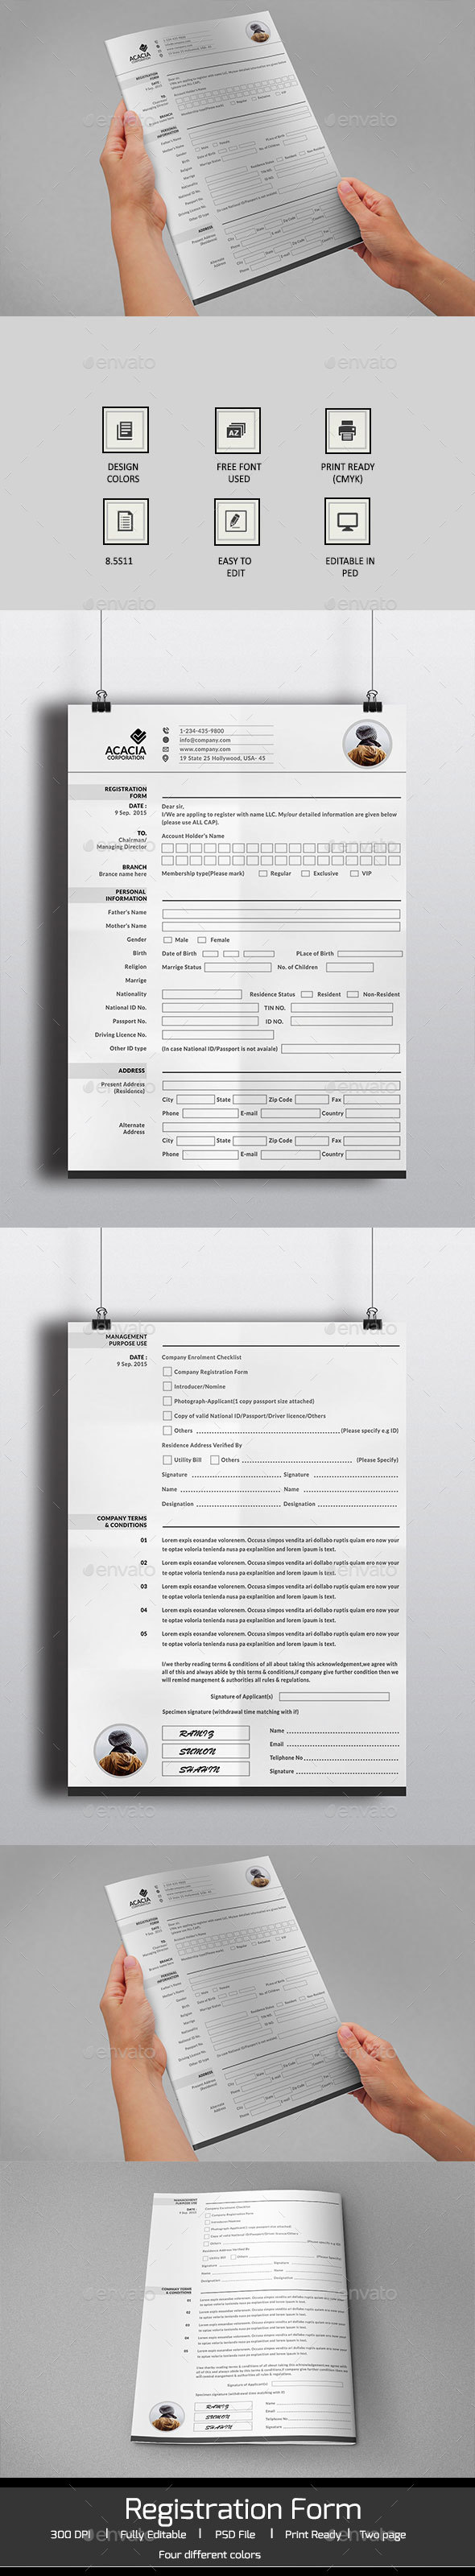 2 Page Registration Form - Miscellaneous Print Templates